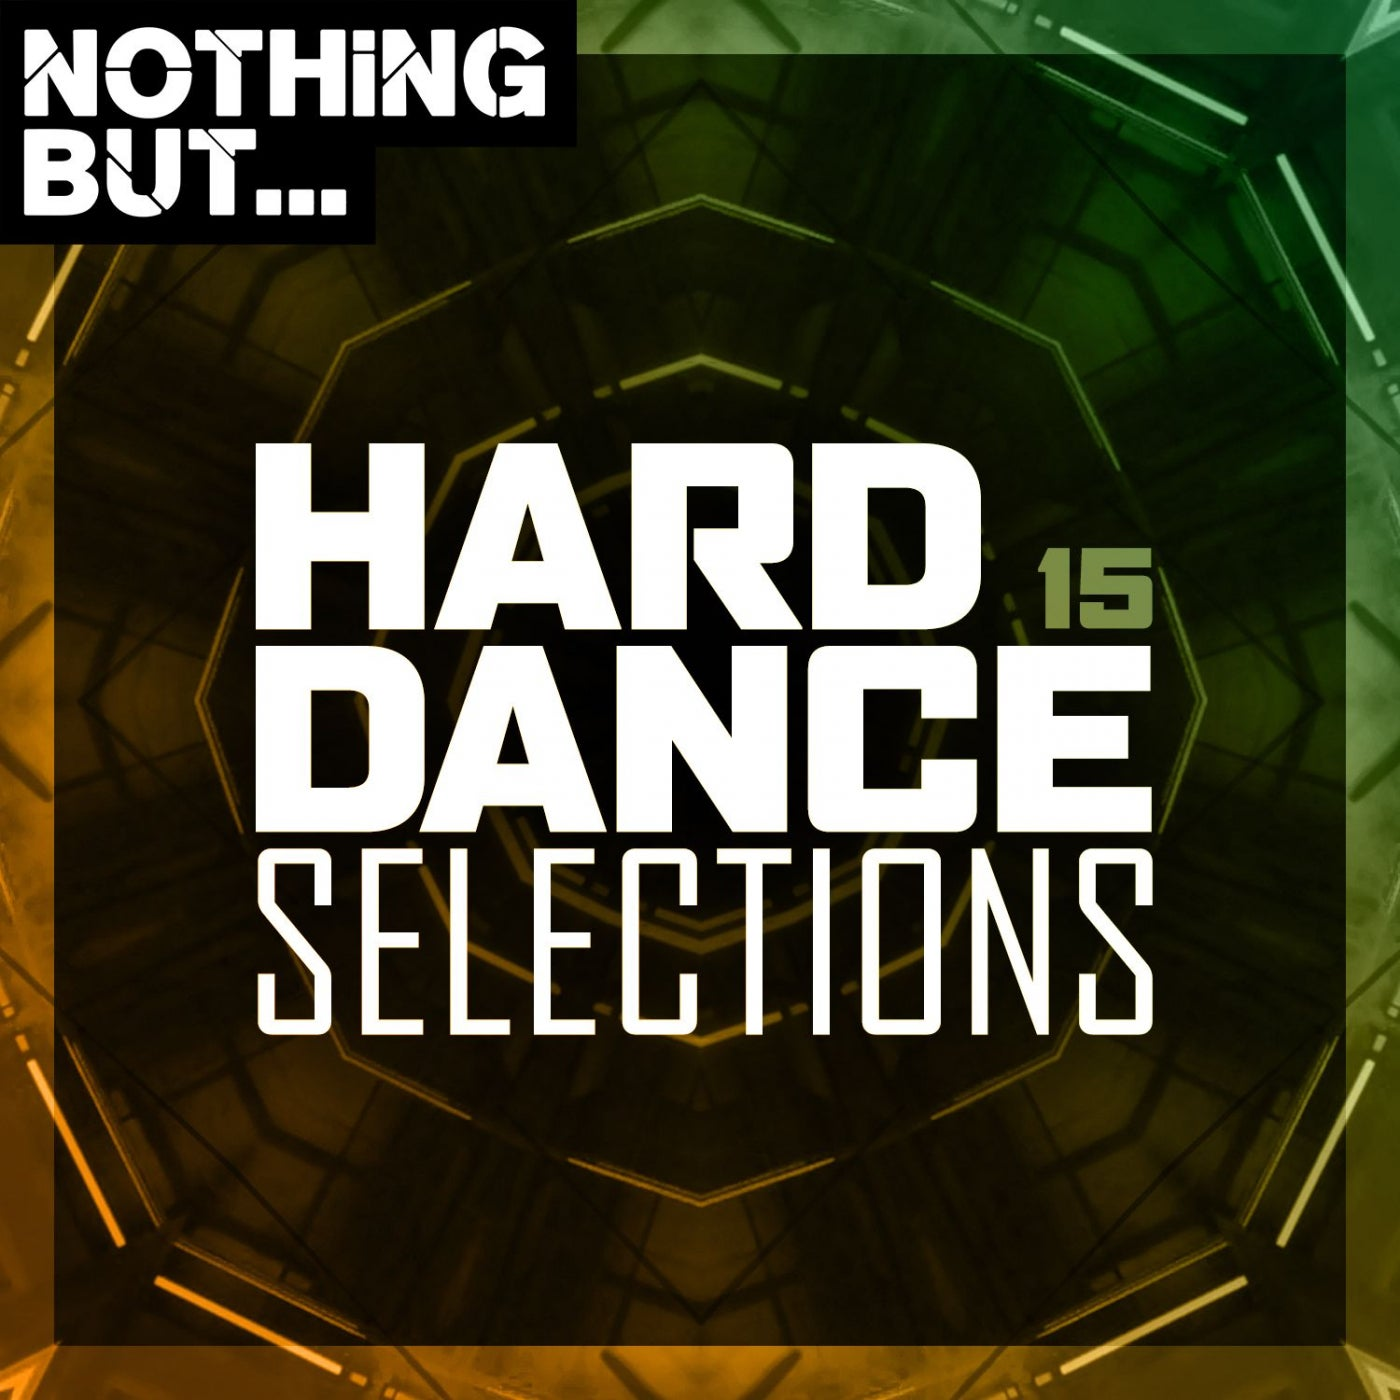 Various Performers - Nothing But... Hard Dance Selections Vol 15 (2021)